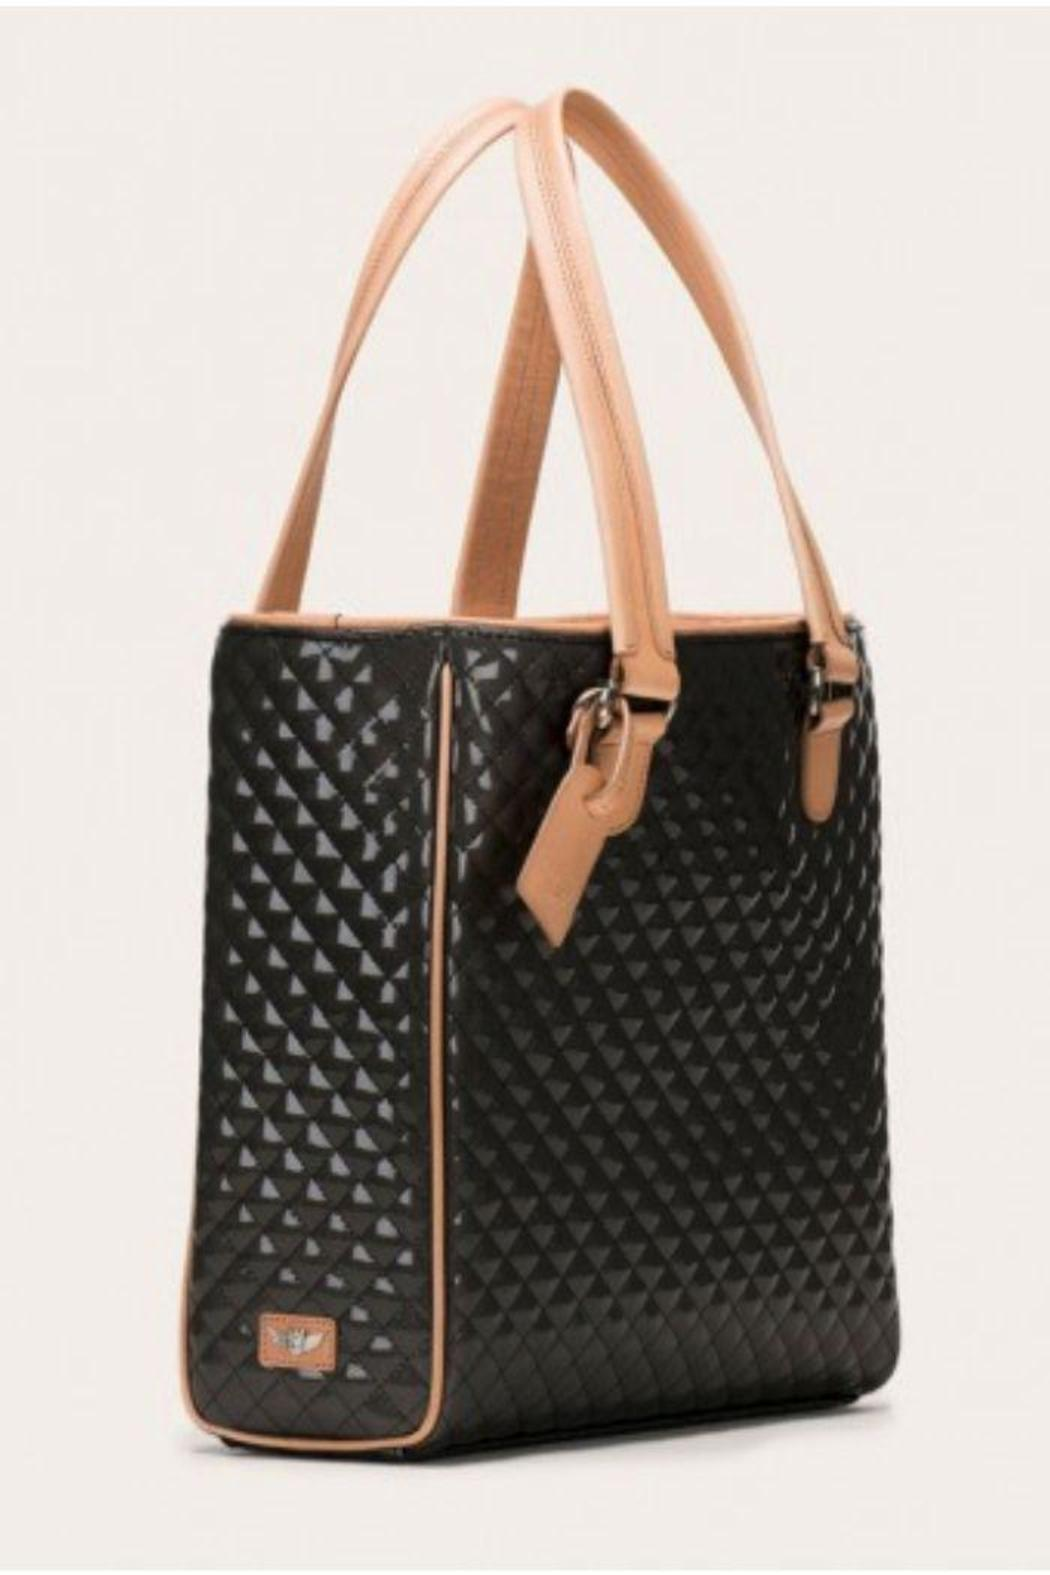 Consuela Candy Crush Tote From Palm Beach By Envy Of Palm